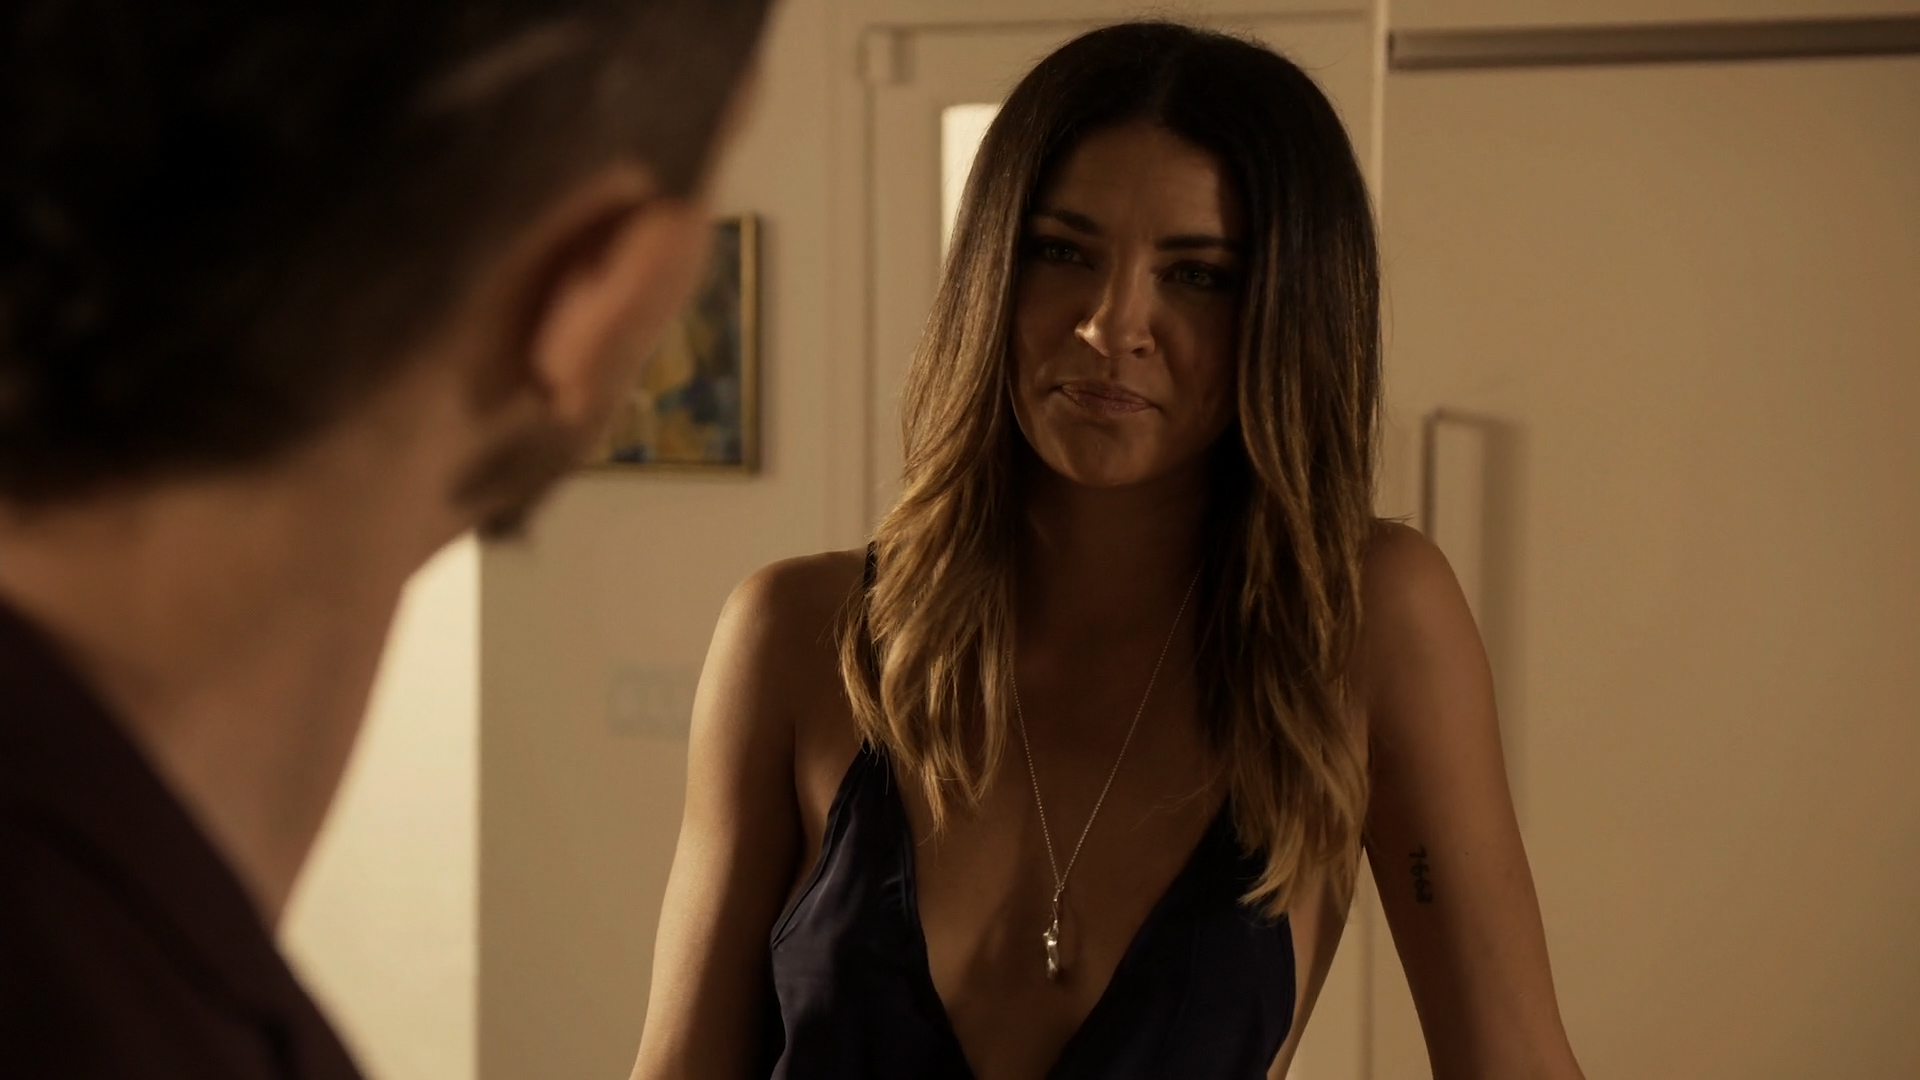 Jessica szohr kingdom s02e02 - 2 part 9